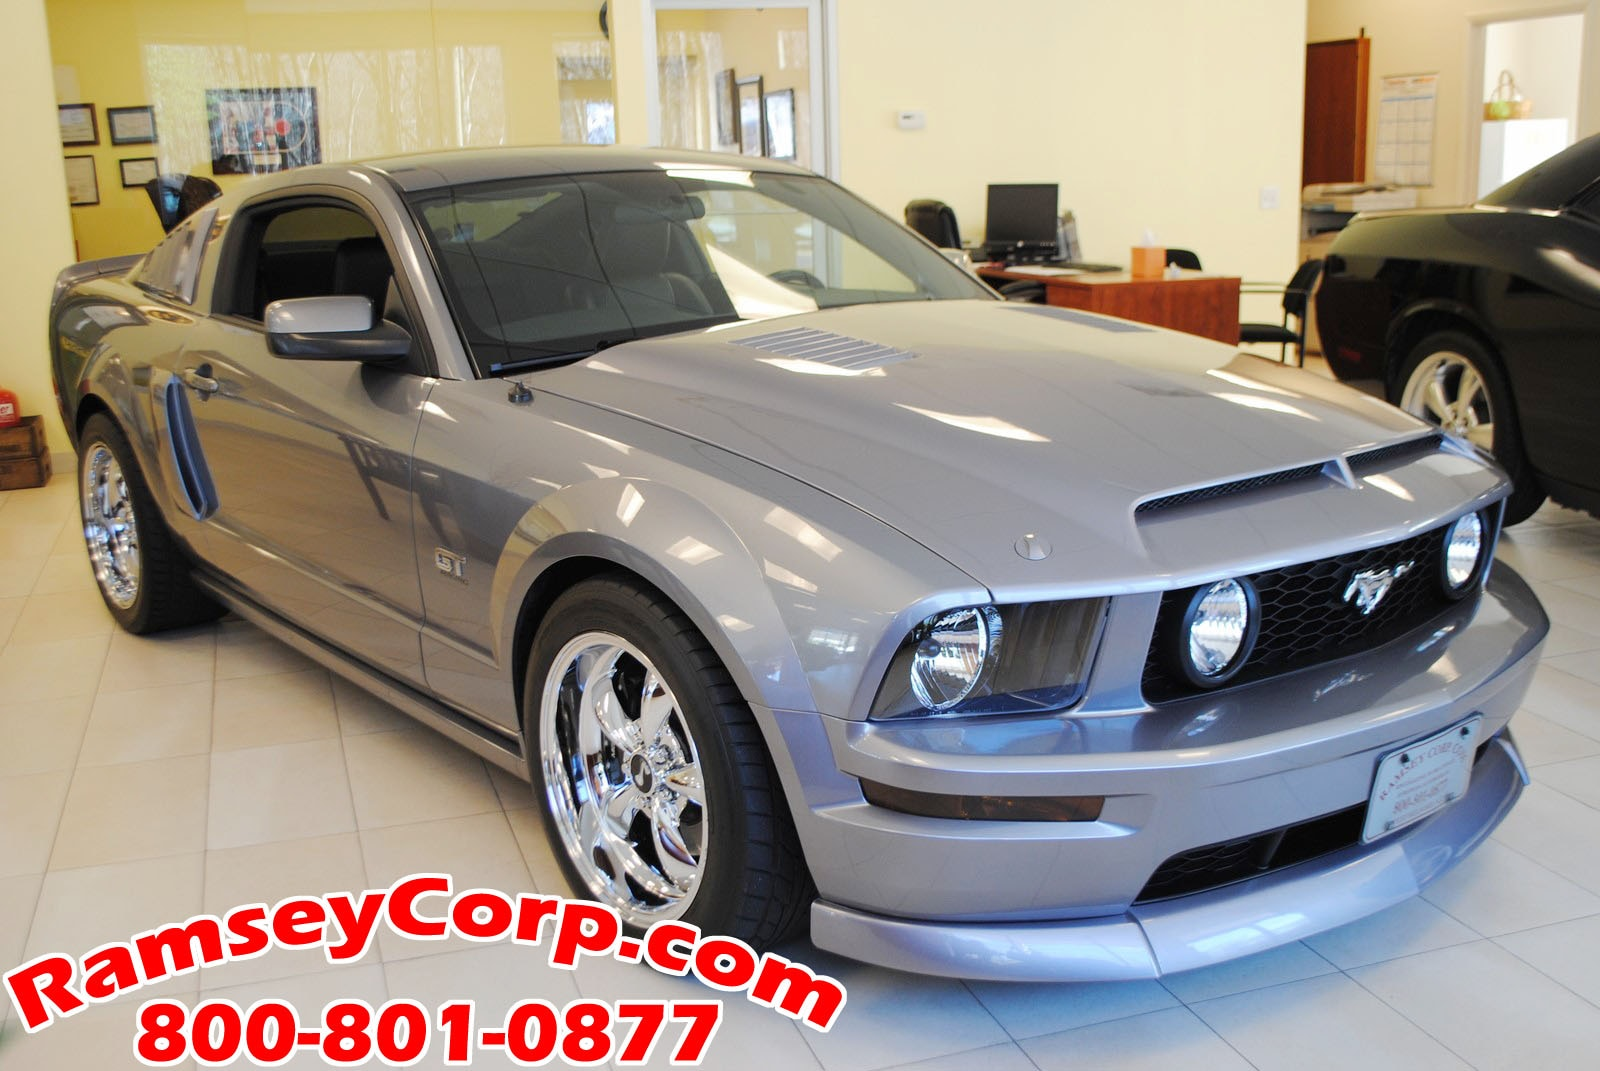 used 2006 ford mustang for sale west milford nj. Cars Review. Best American Auto & Cars Review